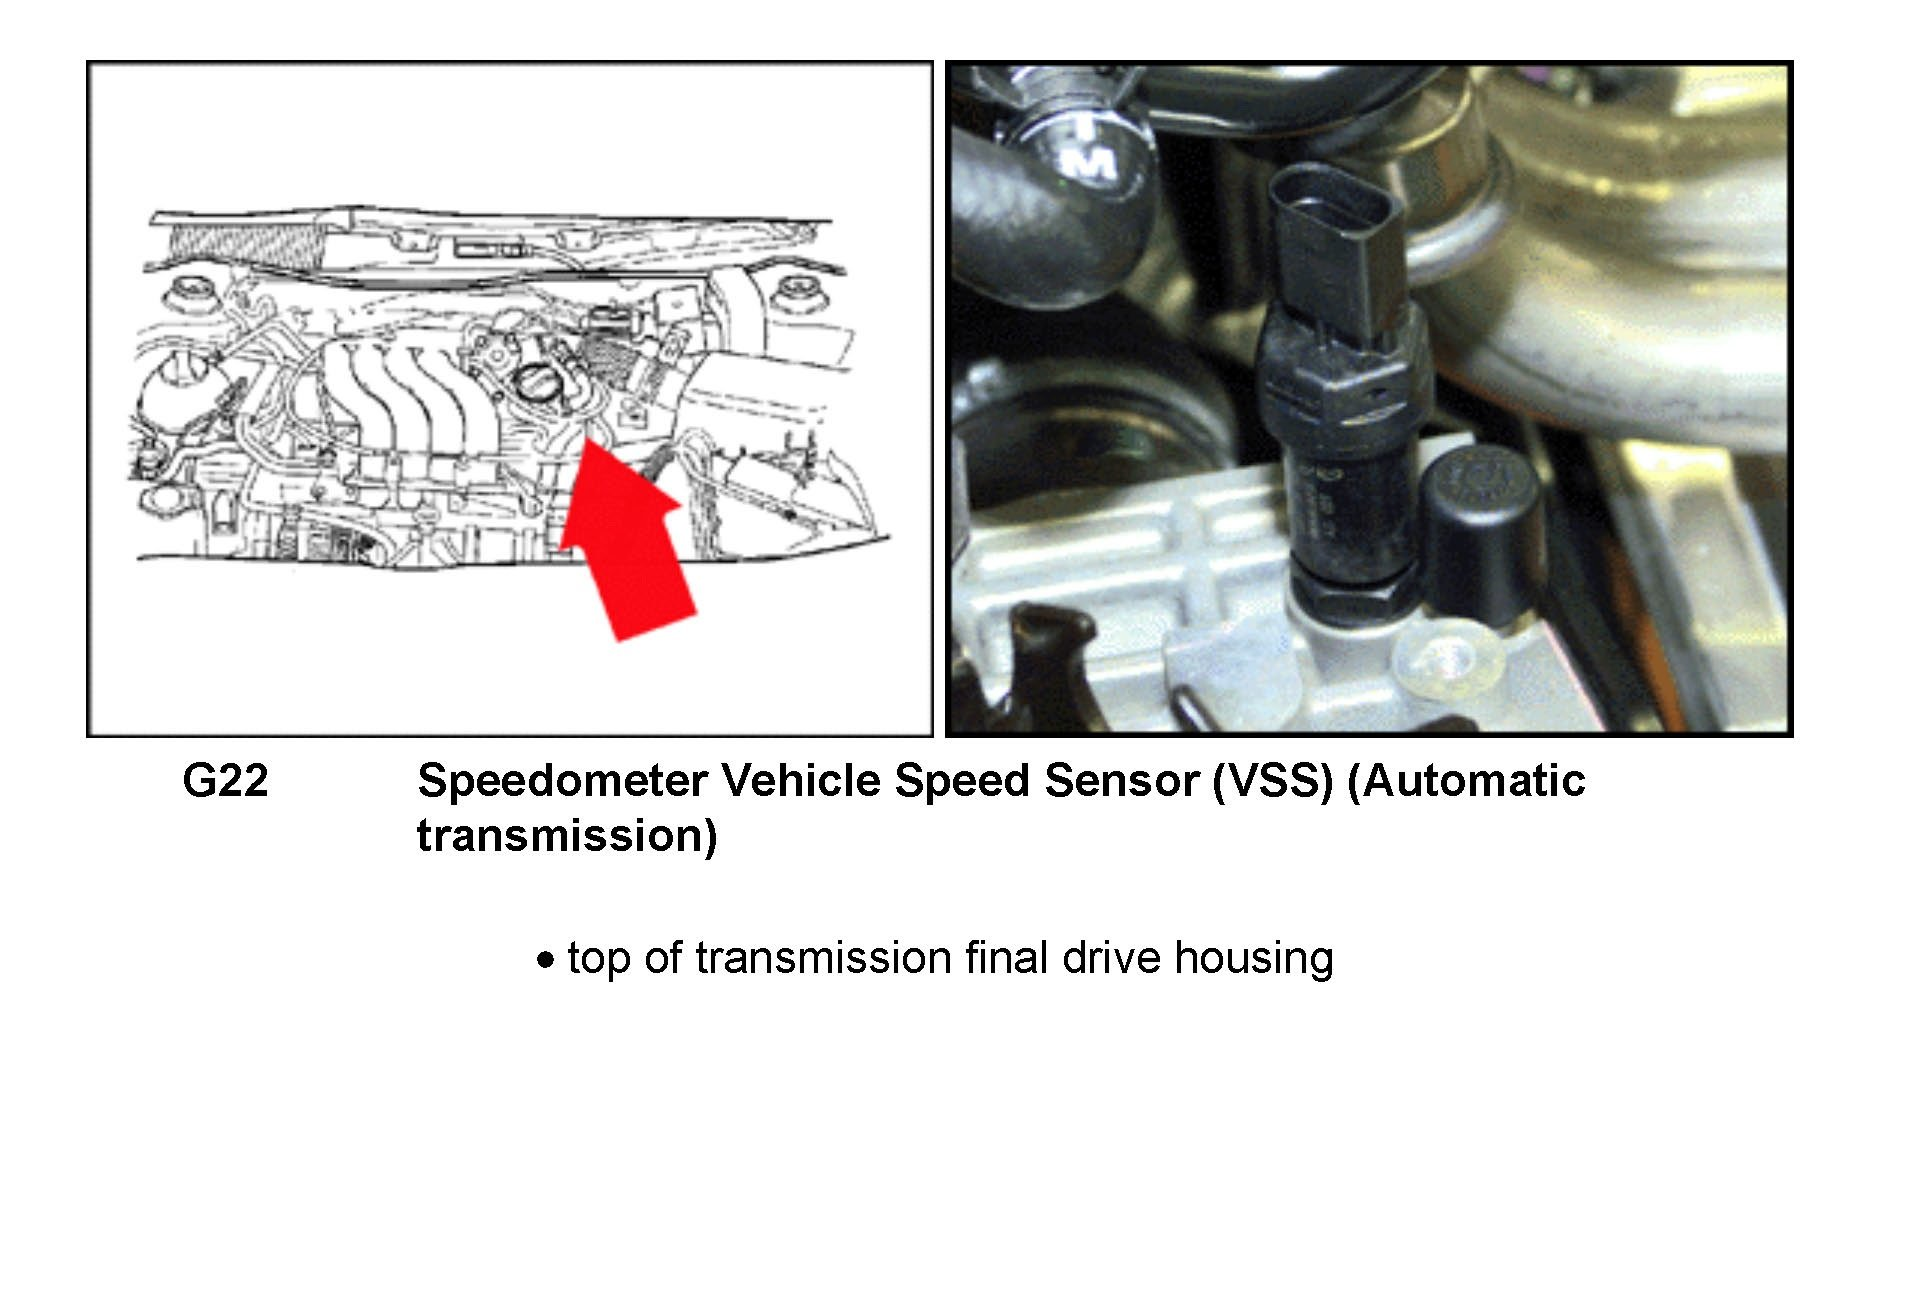 I Have A 2002 Vw Jetta Vr6  What Are The Steps To Replace The Speed Sensors On The Tranny